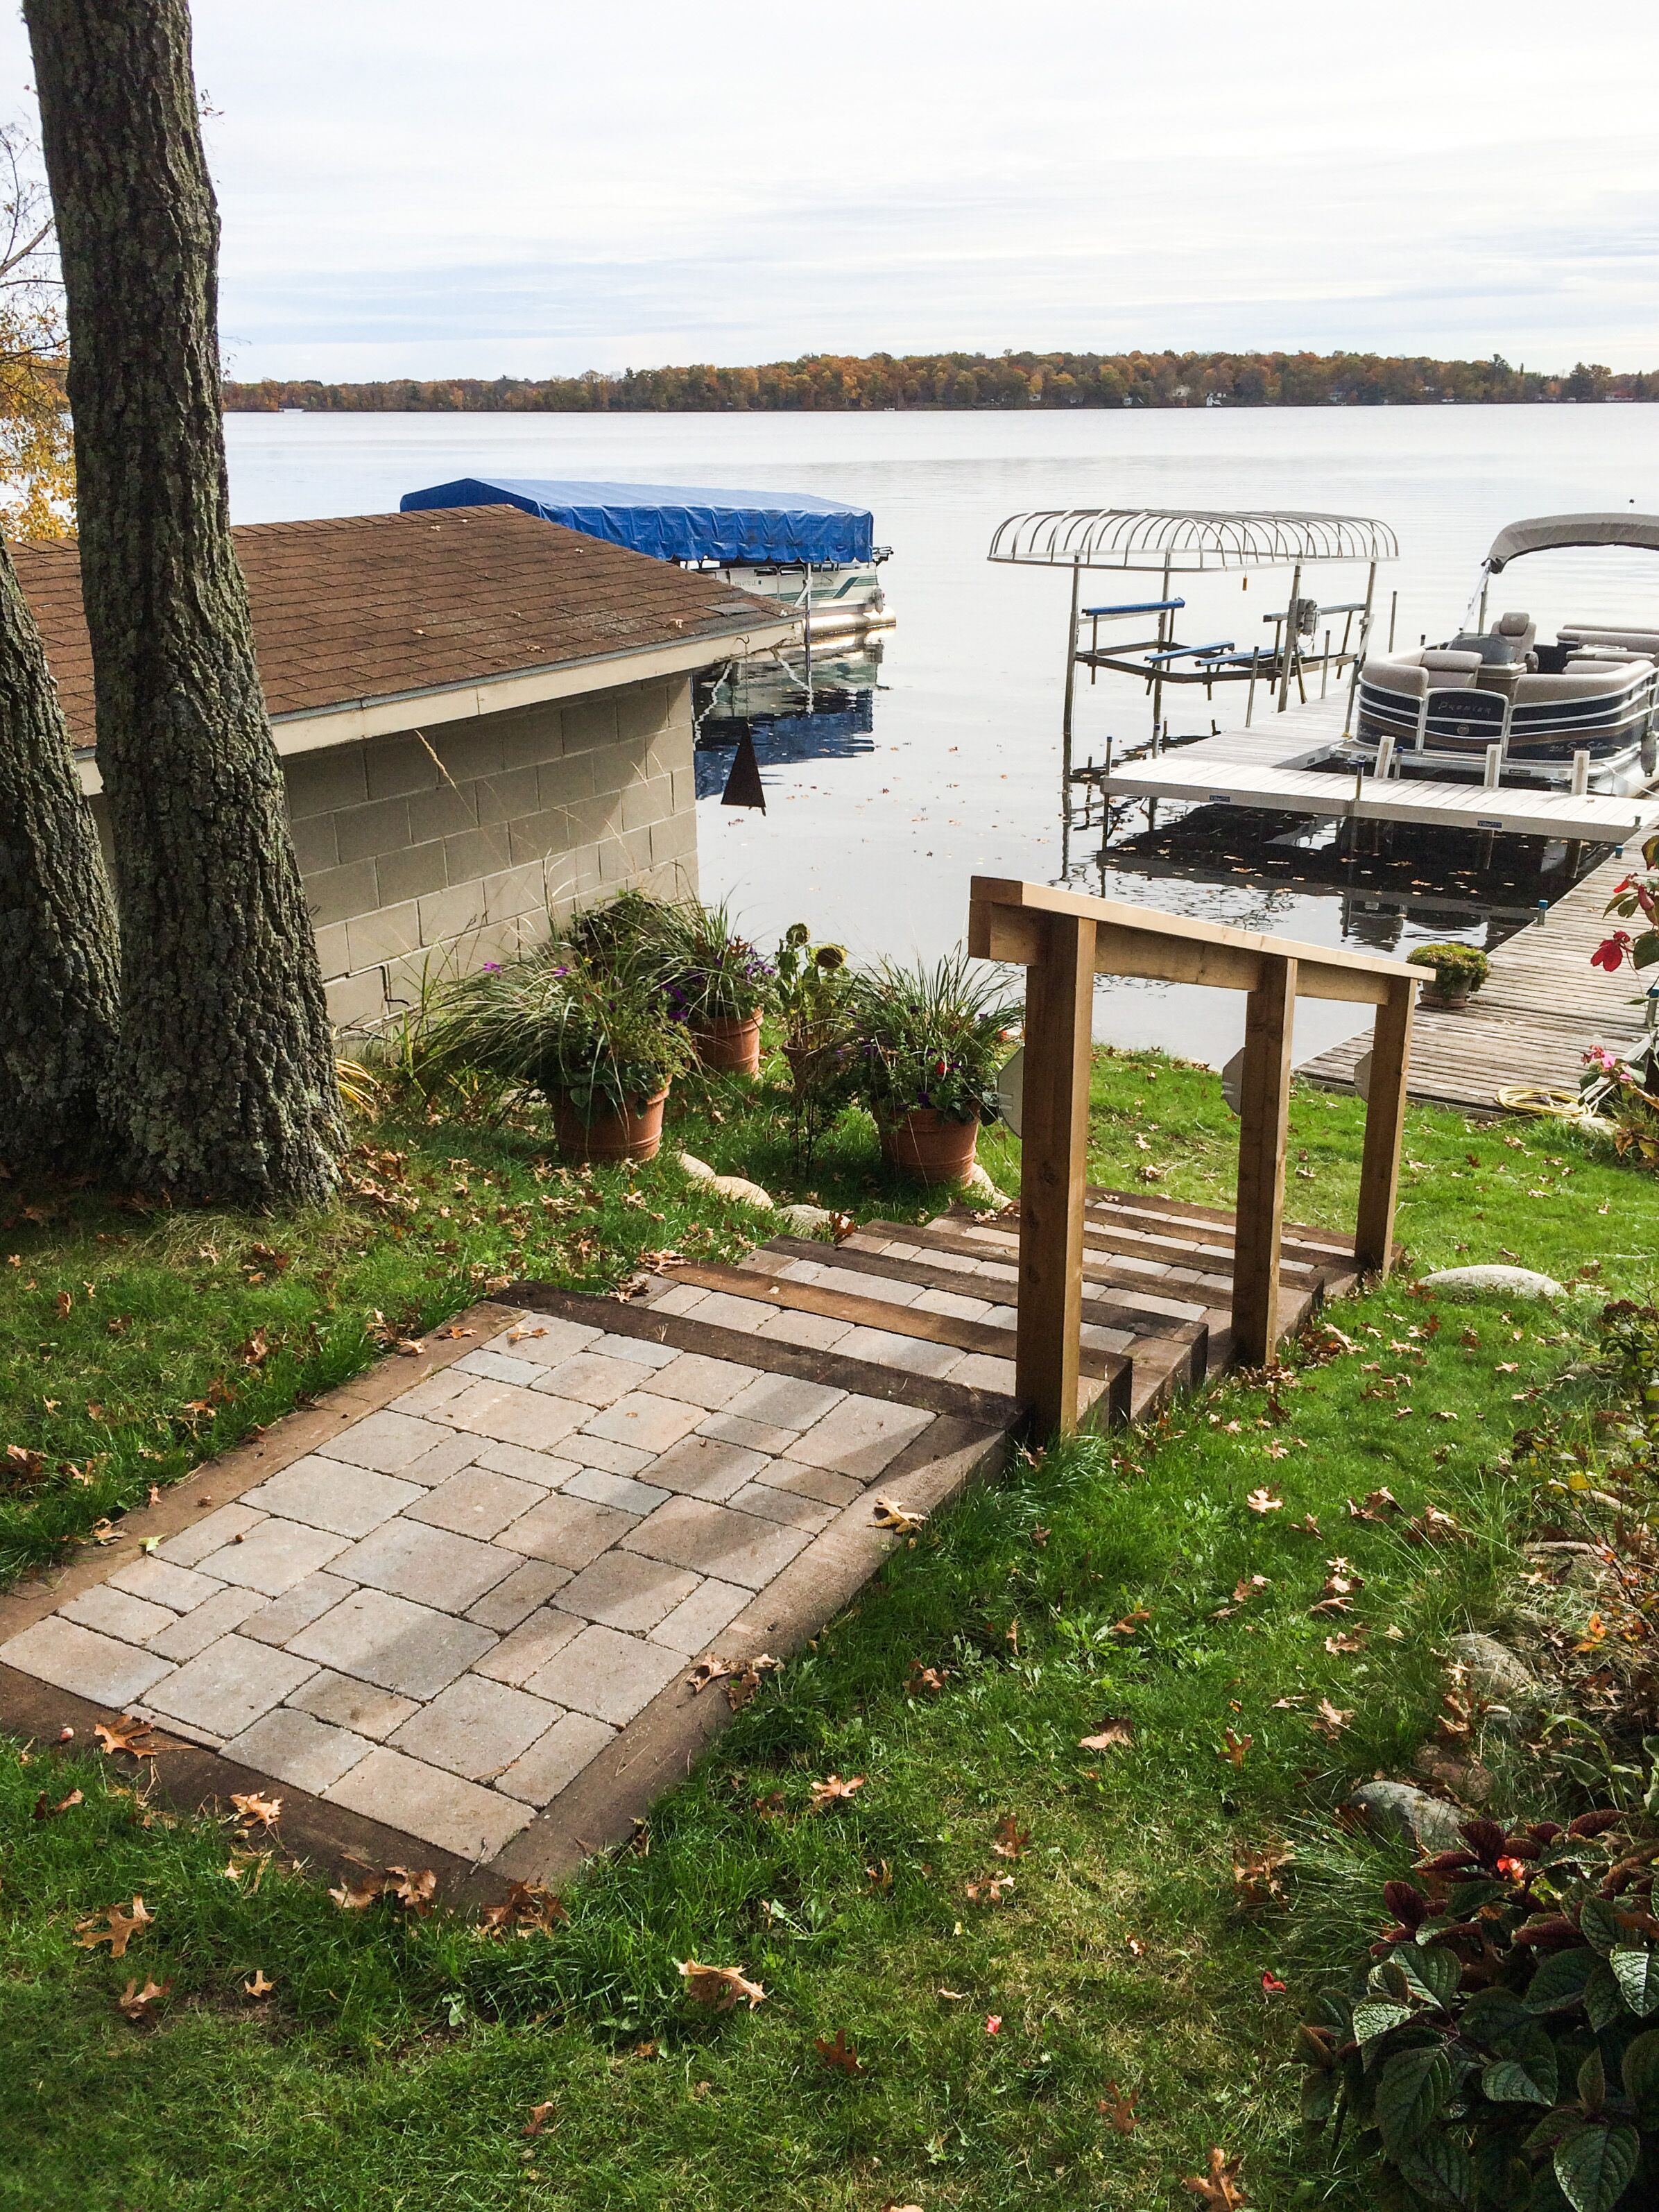 Paver stairs going down to lake